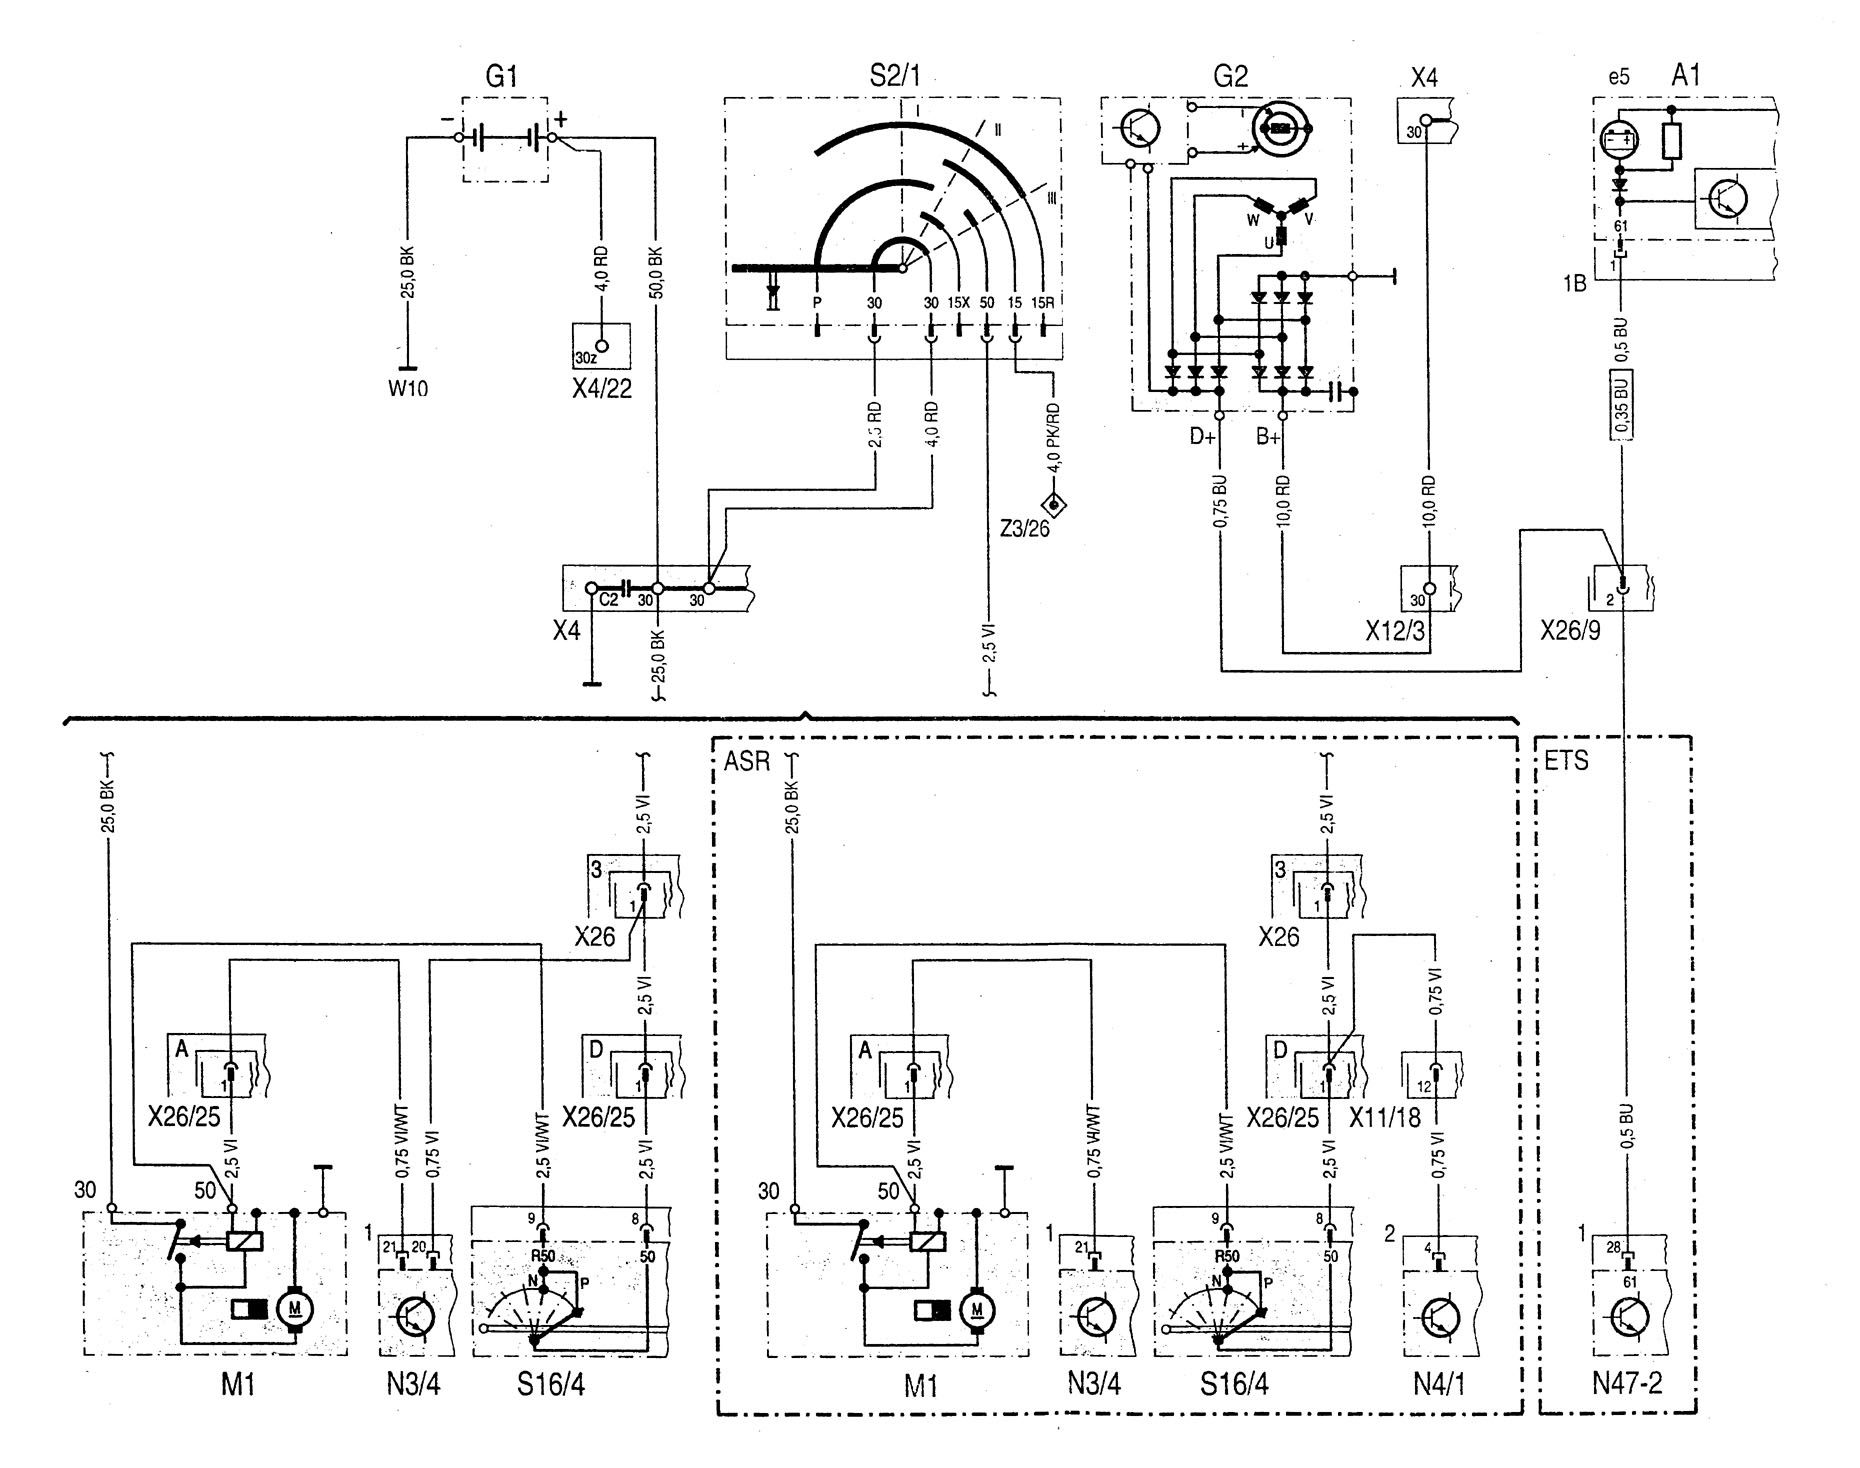 Mercedes Benz S500 Fuse Box Diagram Manual Of Wiring 2002 C240 1997 C280 U2022 Image Information